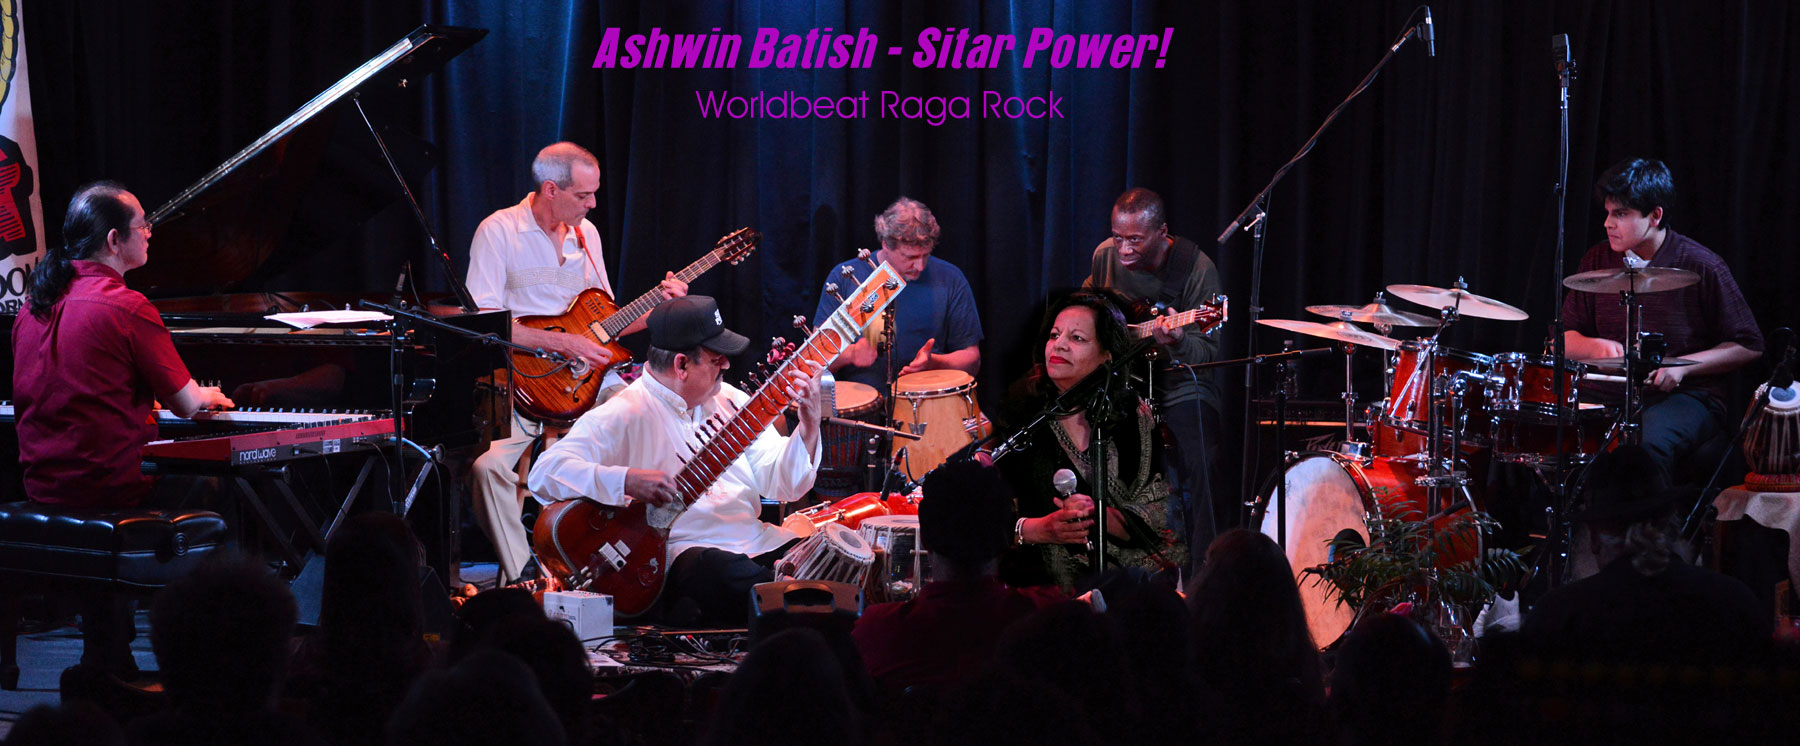 Ashwin Batish with his Sitar Power group - live at the Kuumbwa Jazz Center, Santa Cruz. All rights reserved. �12 Ashwin Batish. Copyrighted image